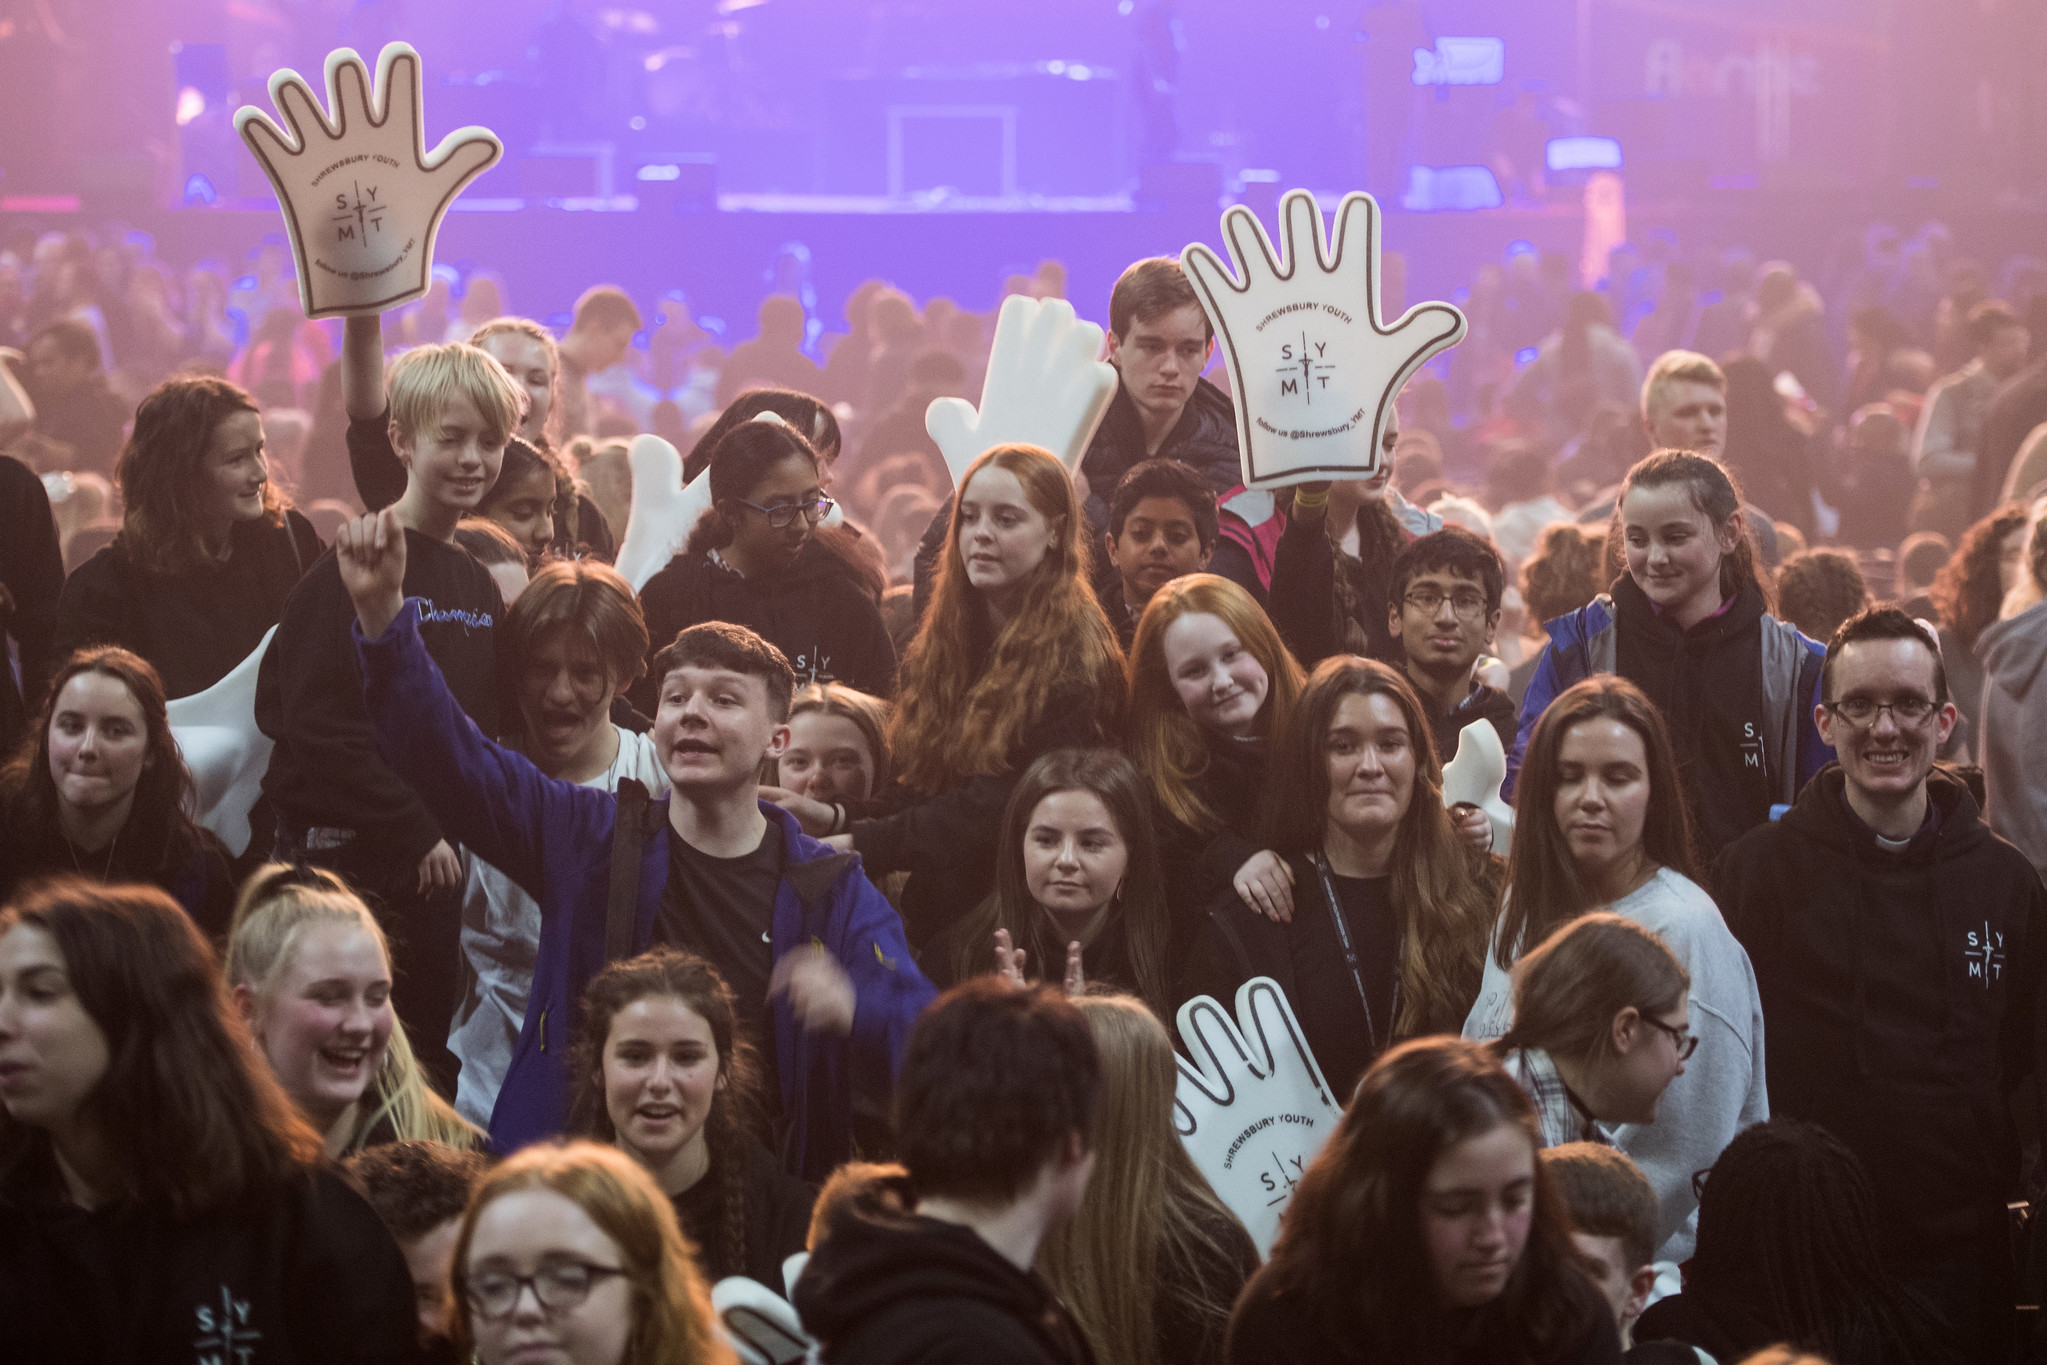 Flame: CYMFed organises the Flame Congress, the largest Catholic youth event in the UK. The biannual event gathers 8,500 young people at the SSE Arena, Wembley. Our picture shows Flame 2019